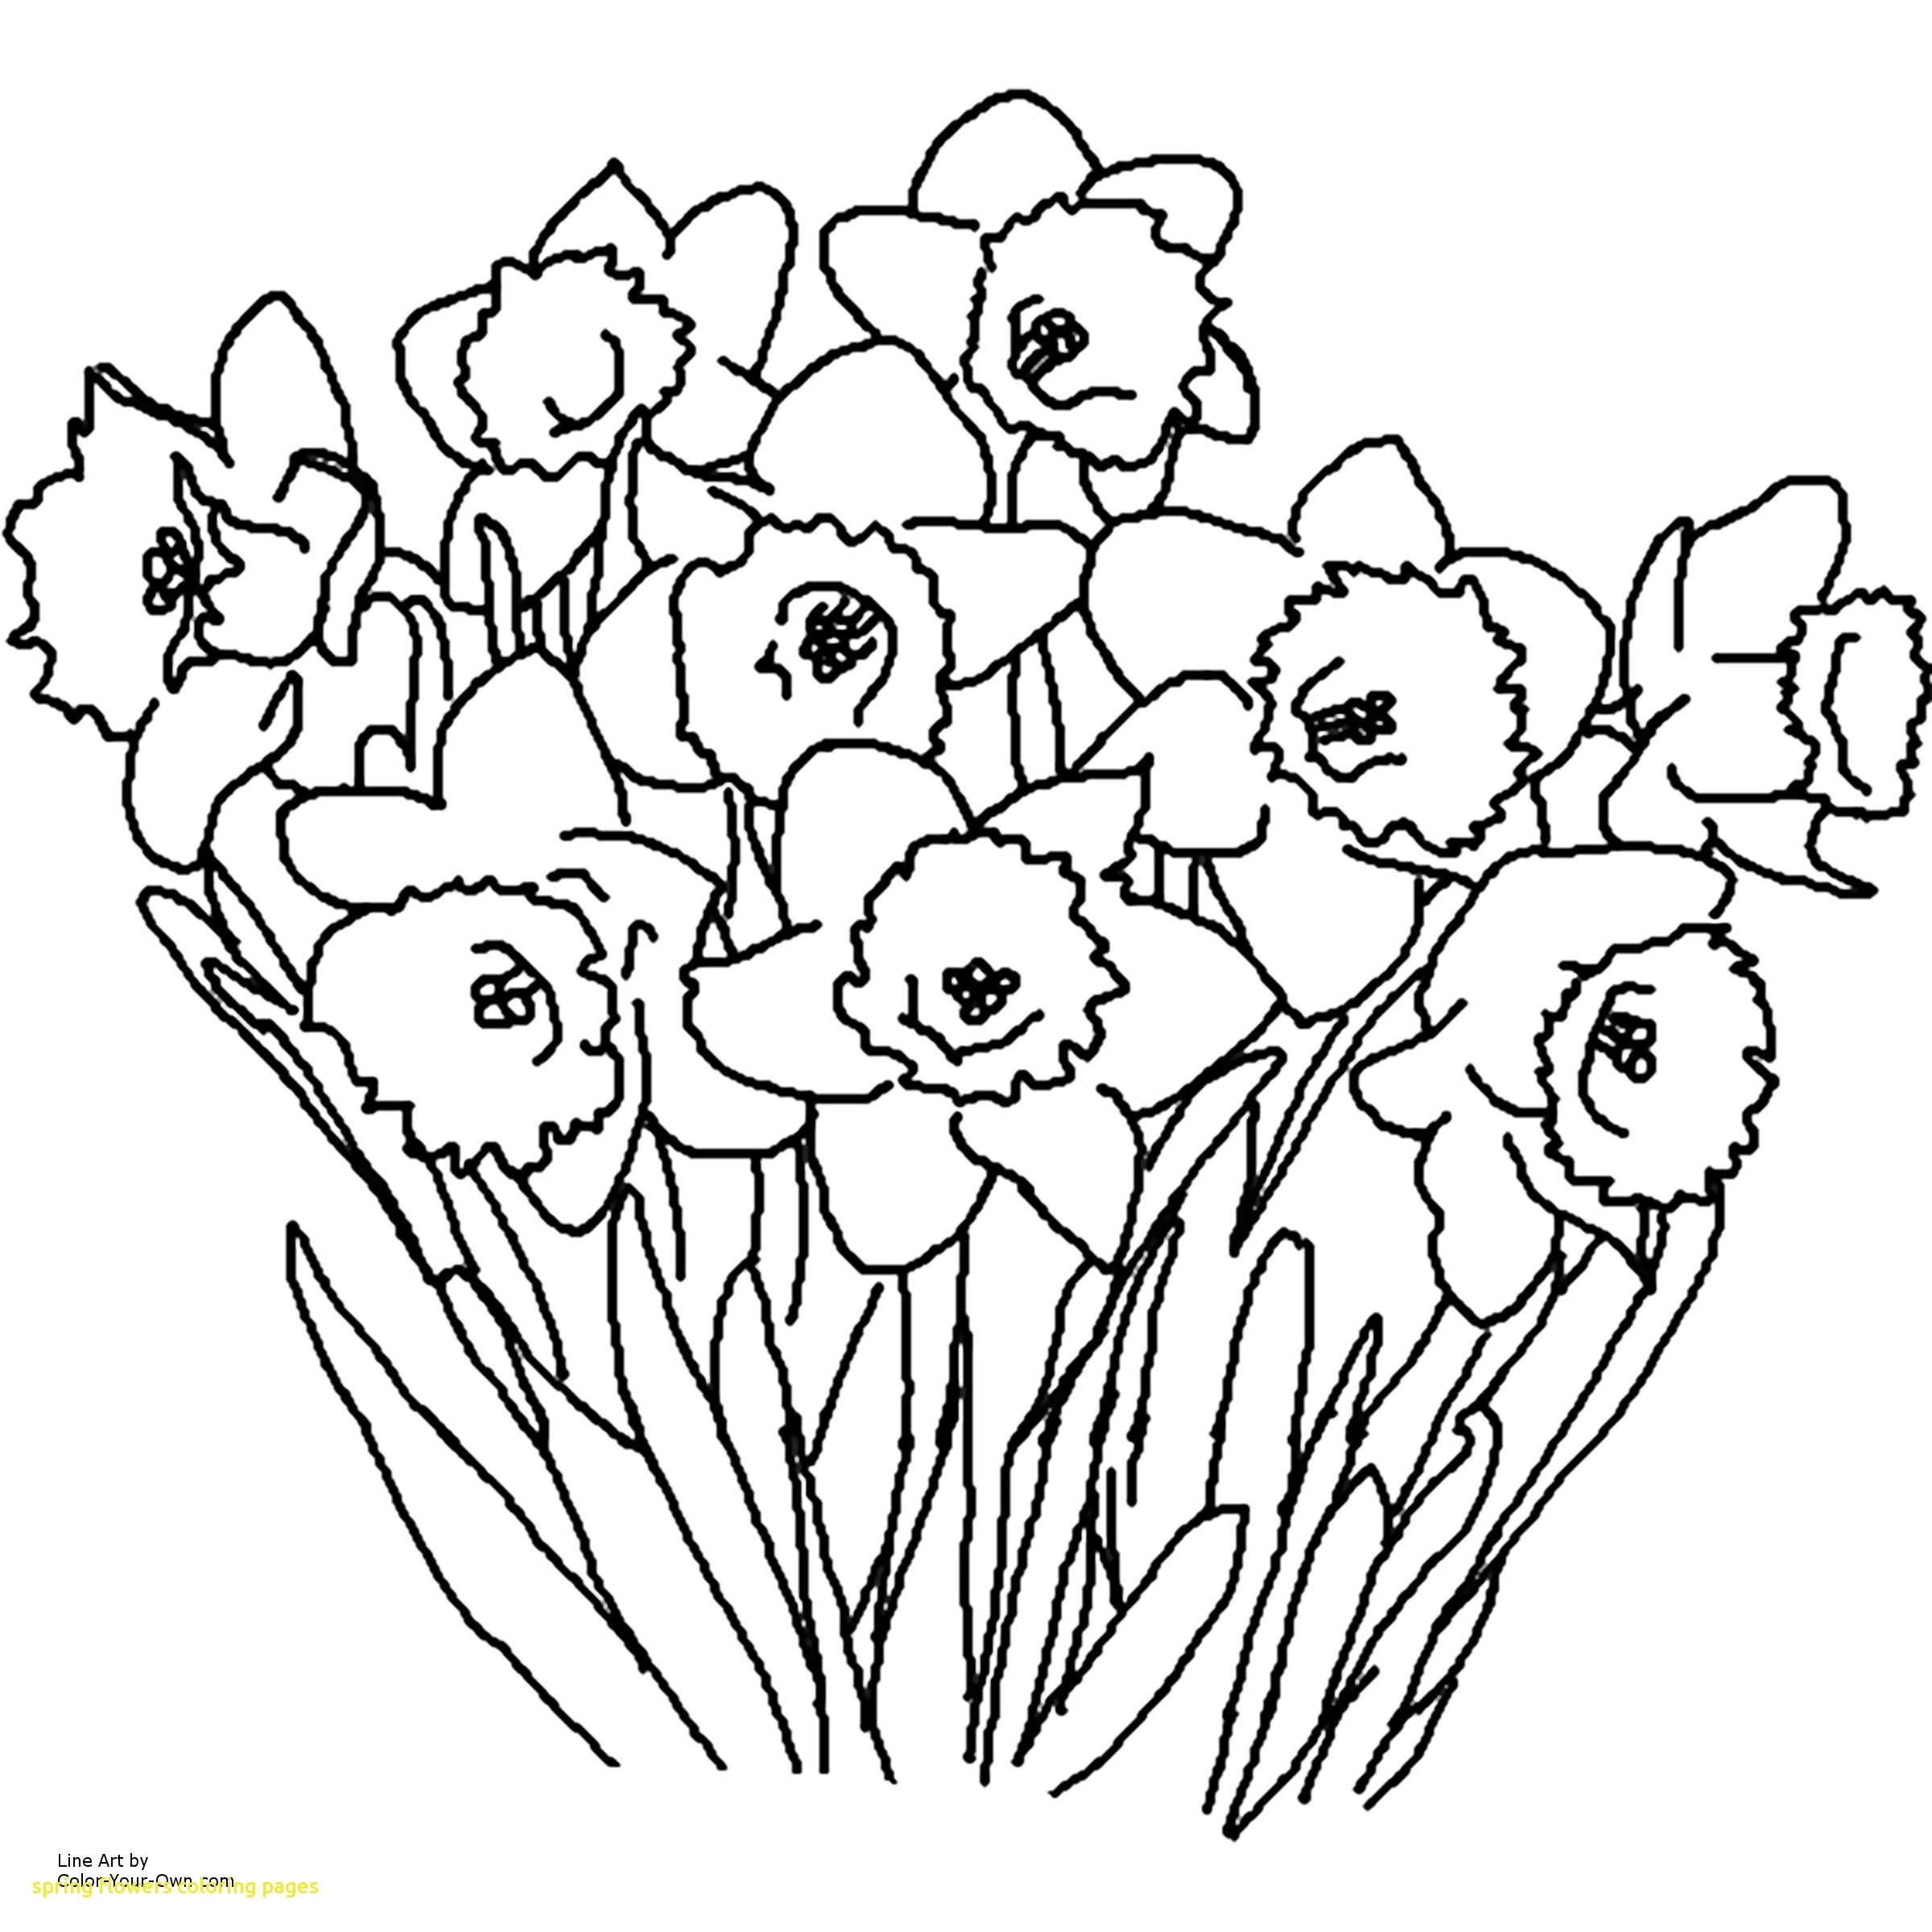 Daffodils Coloring Pages - New Daffodil Flower Coloring Pages Collection Printable